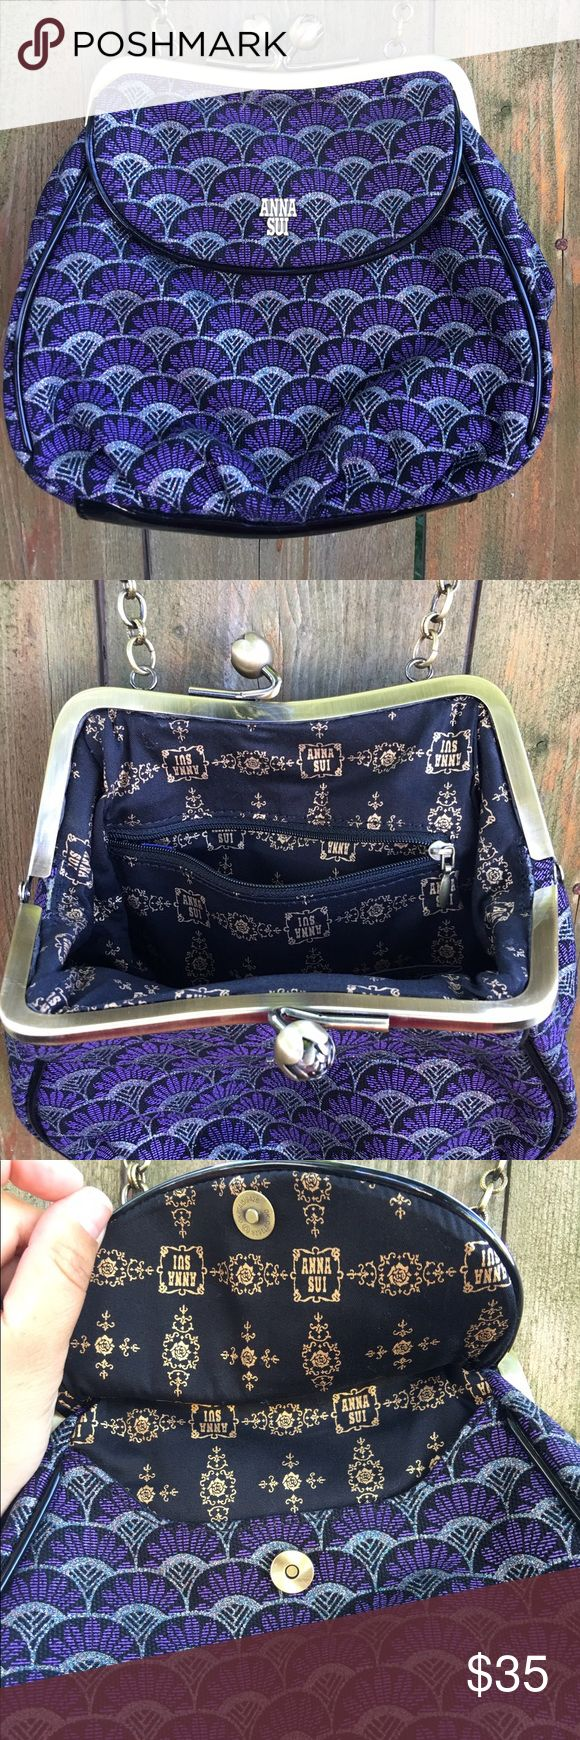 Anna Sui Purse / Handbag Purple, black and silver patterned Anna Sui small handbag / purse with chain handle and snap top closure. Front pocket with magnetic snap and zipped pocket. Anna Sui logo lining. Anna Sui Bags